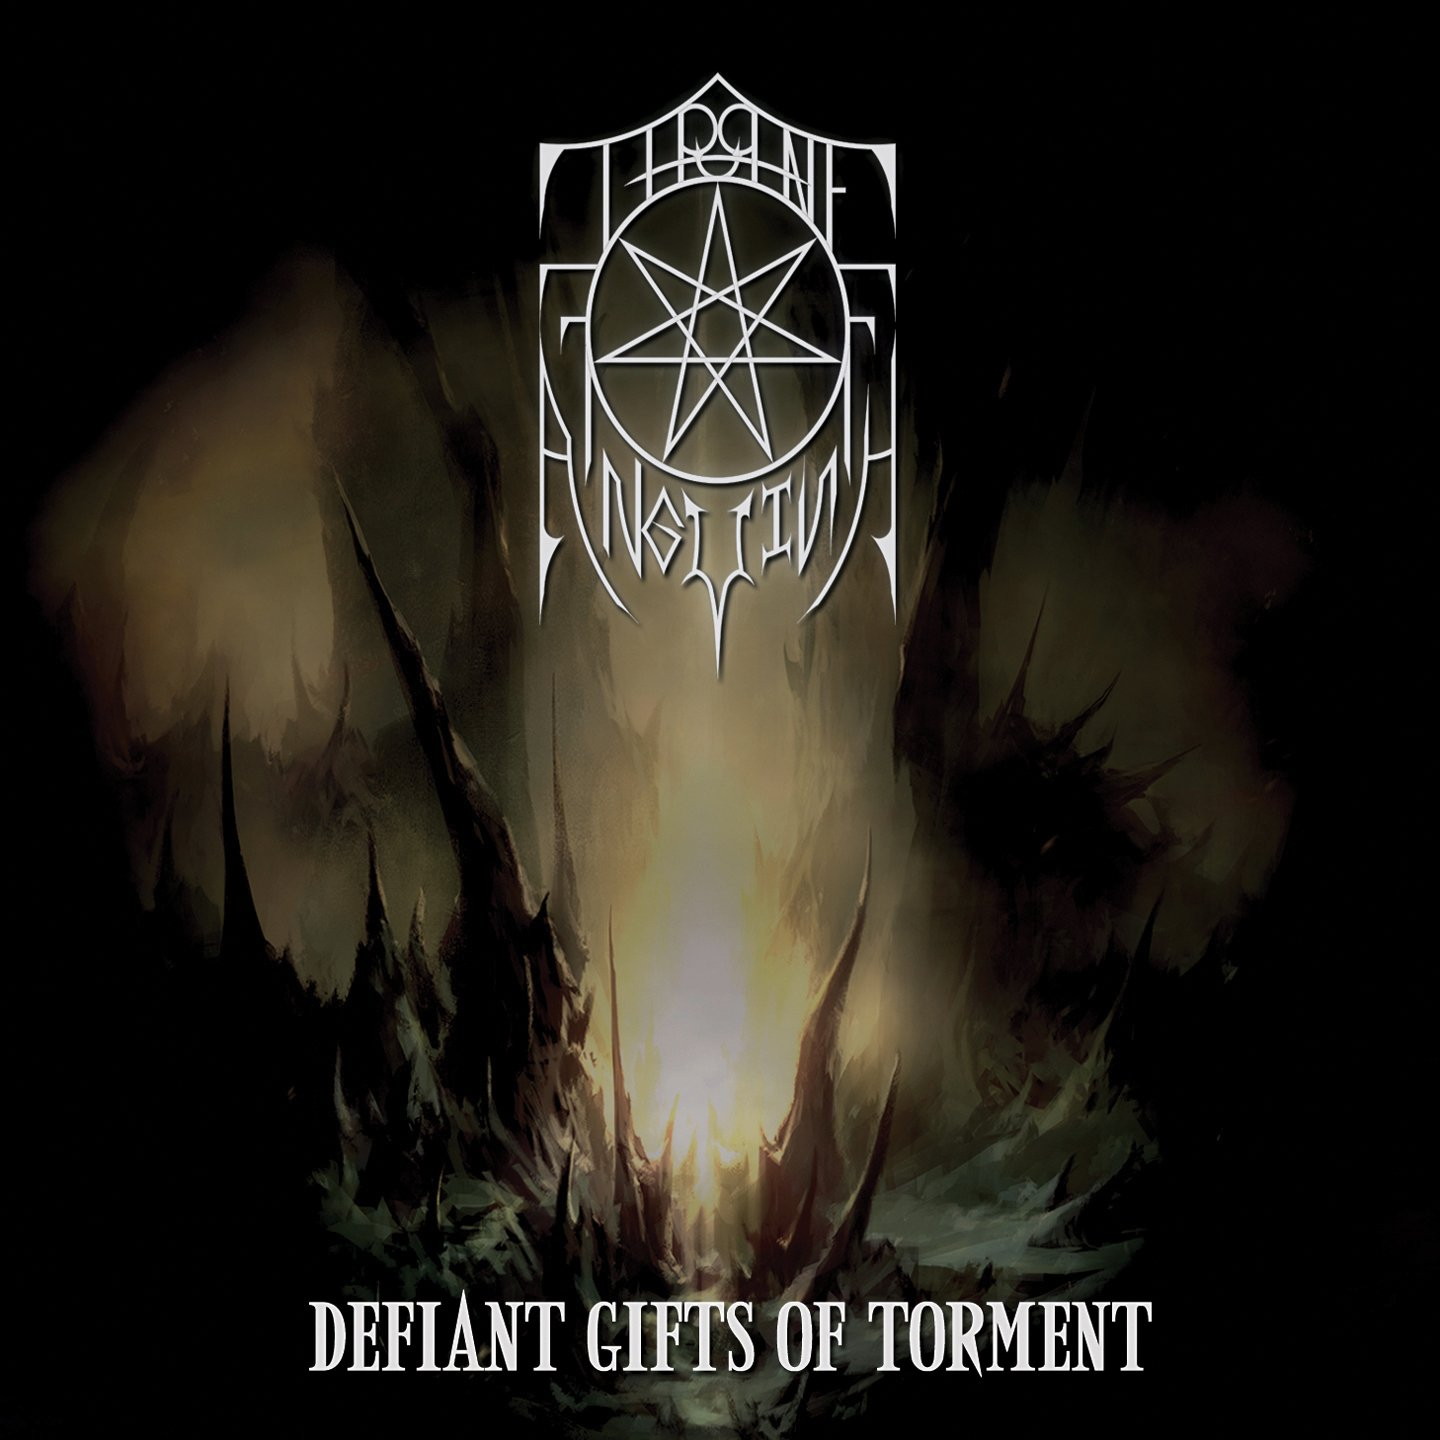 CD : Throne of Anguish - Defiant Gifts Of Torment (CD)